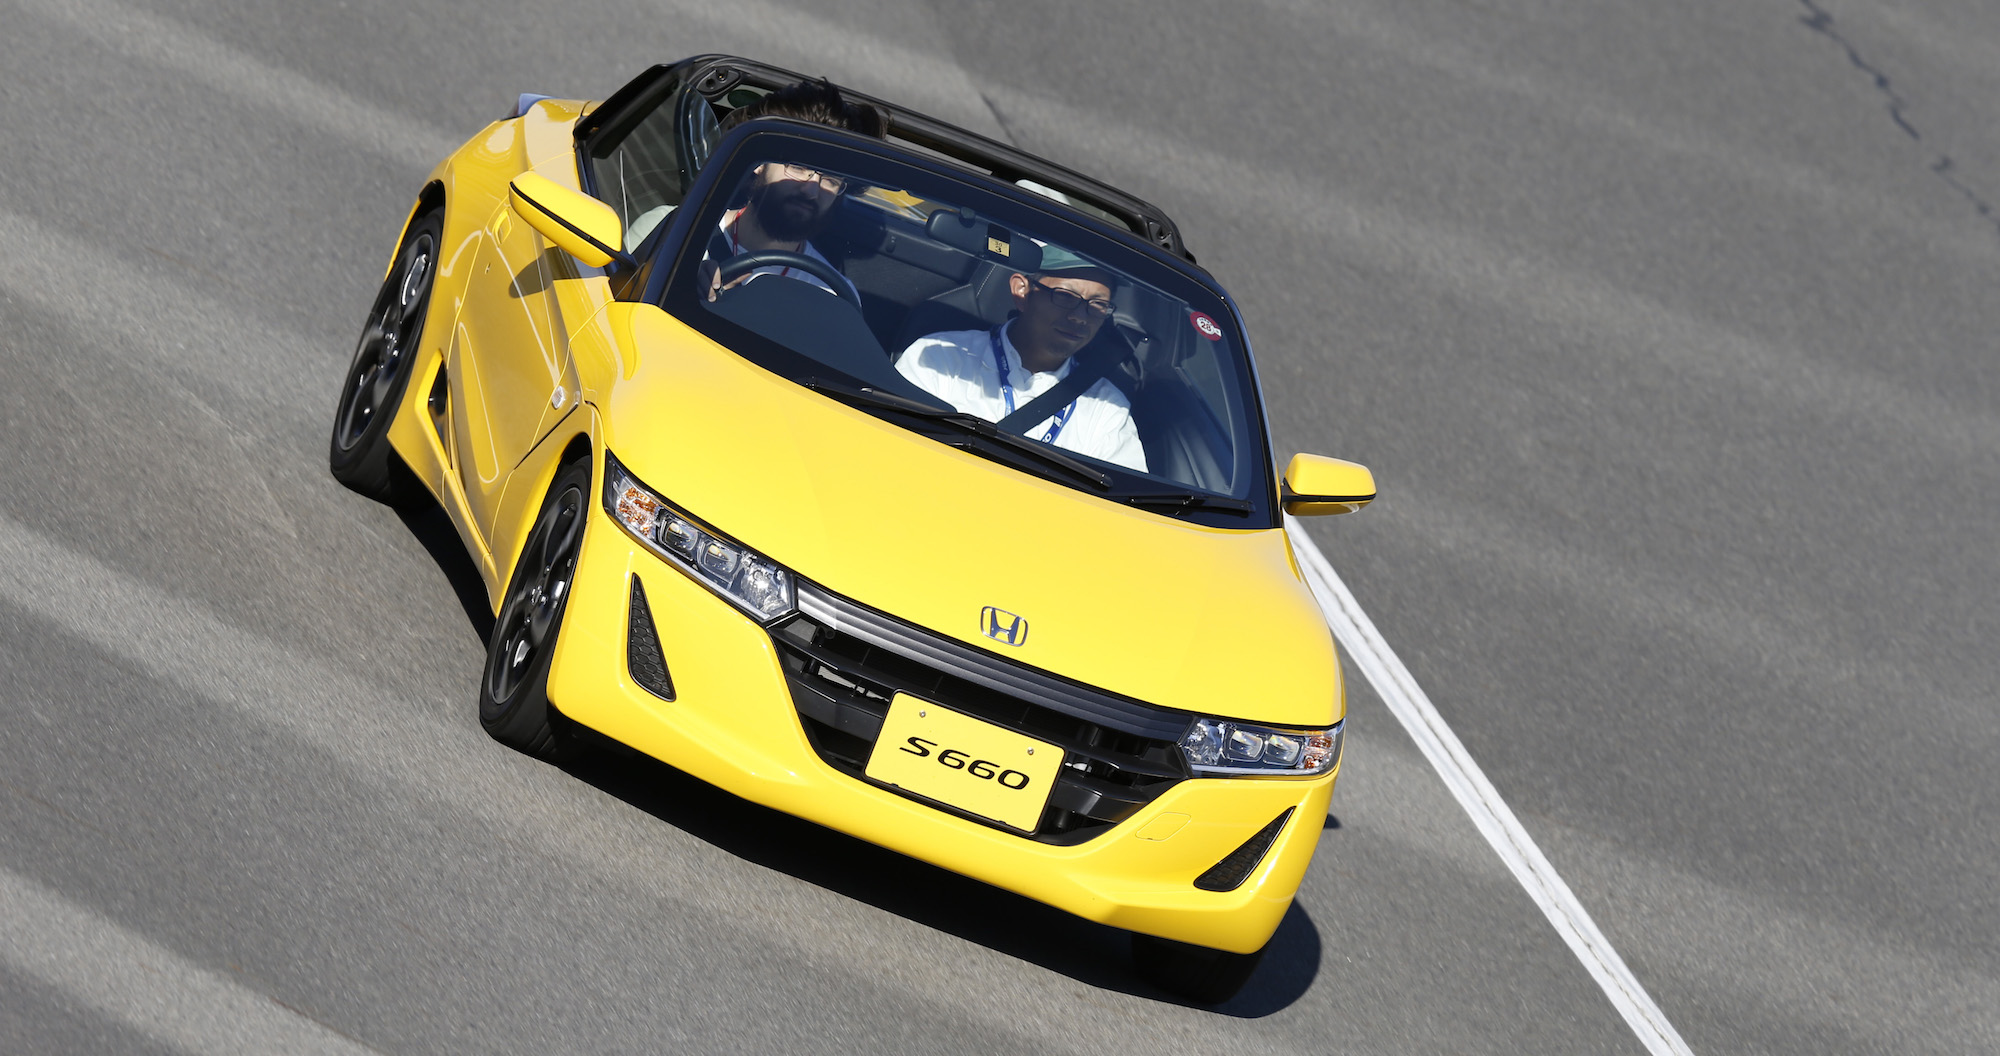 Honda S660 Price >> Honda S660 Review : Quick drive - Photos (1 of 8)